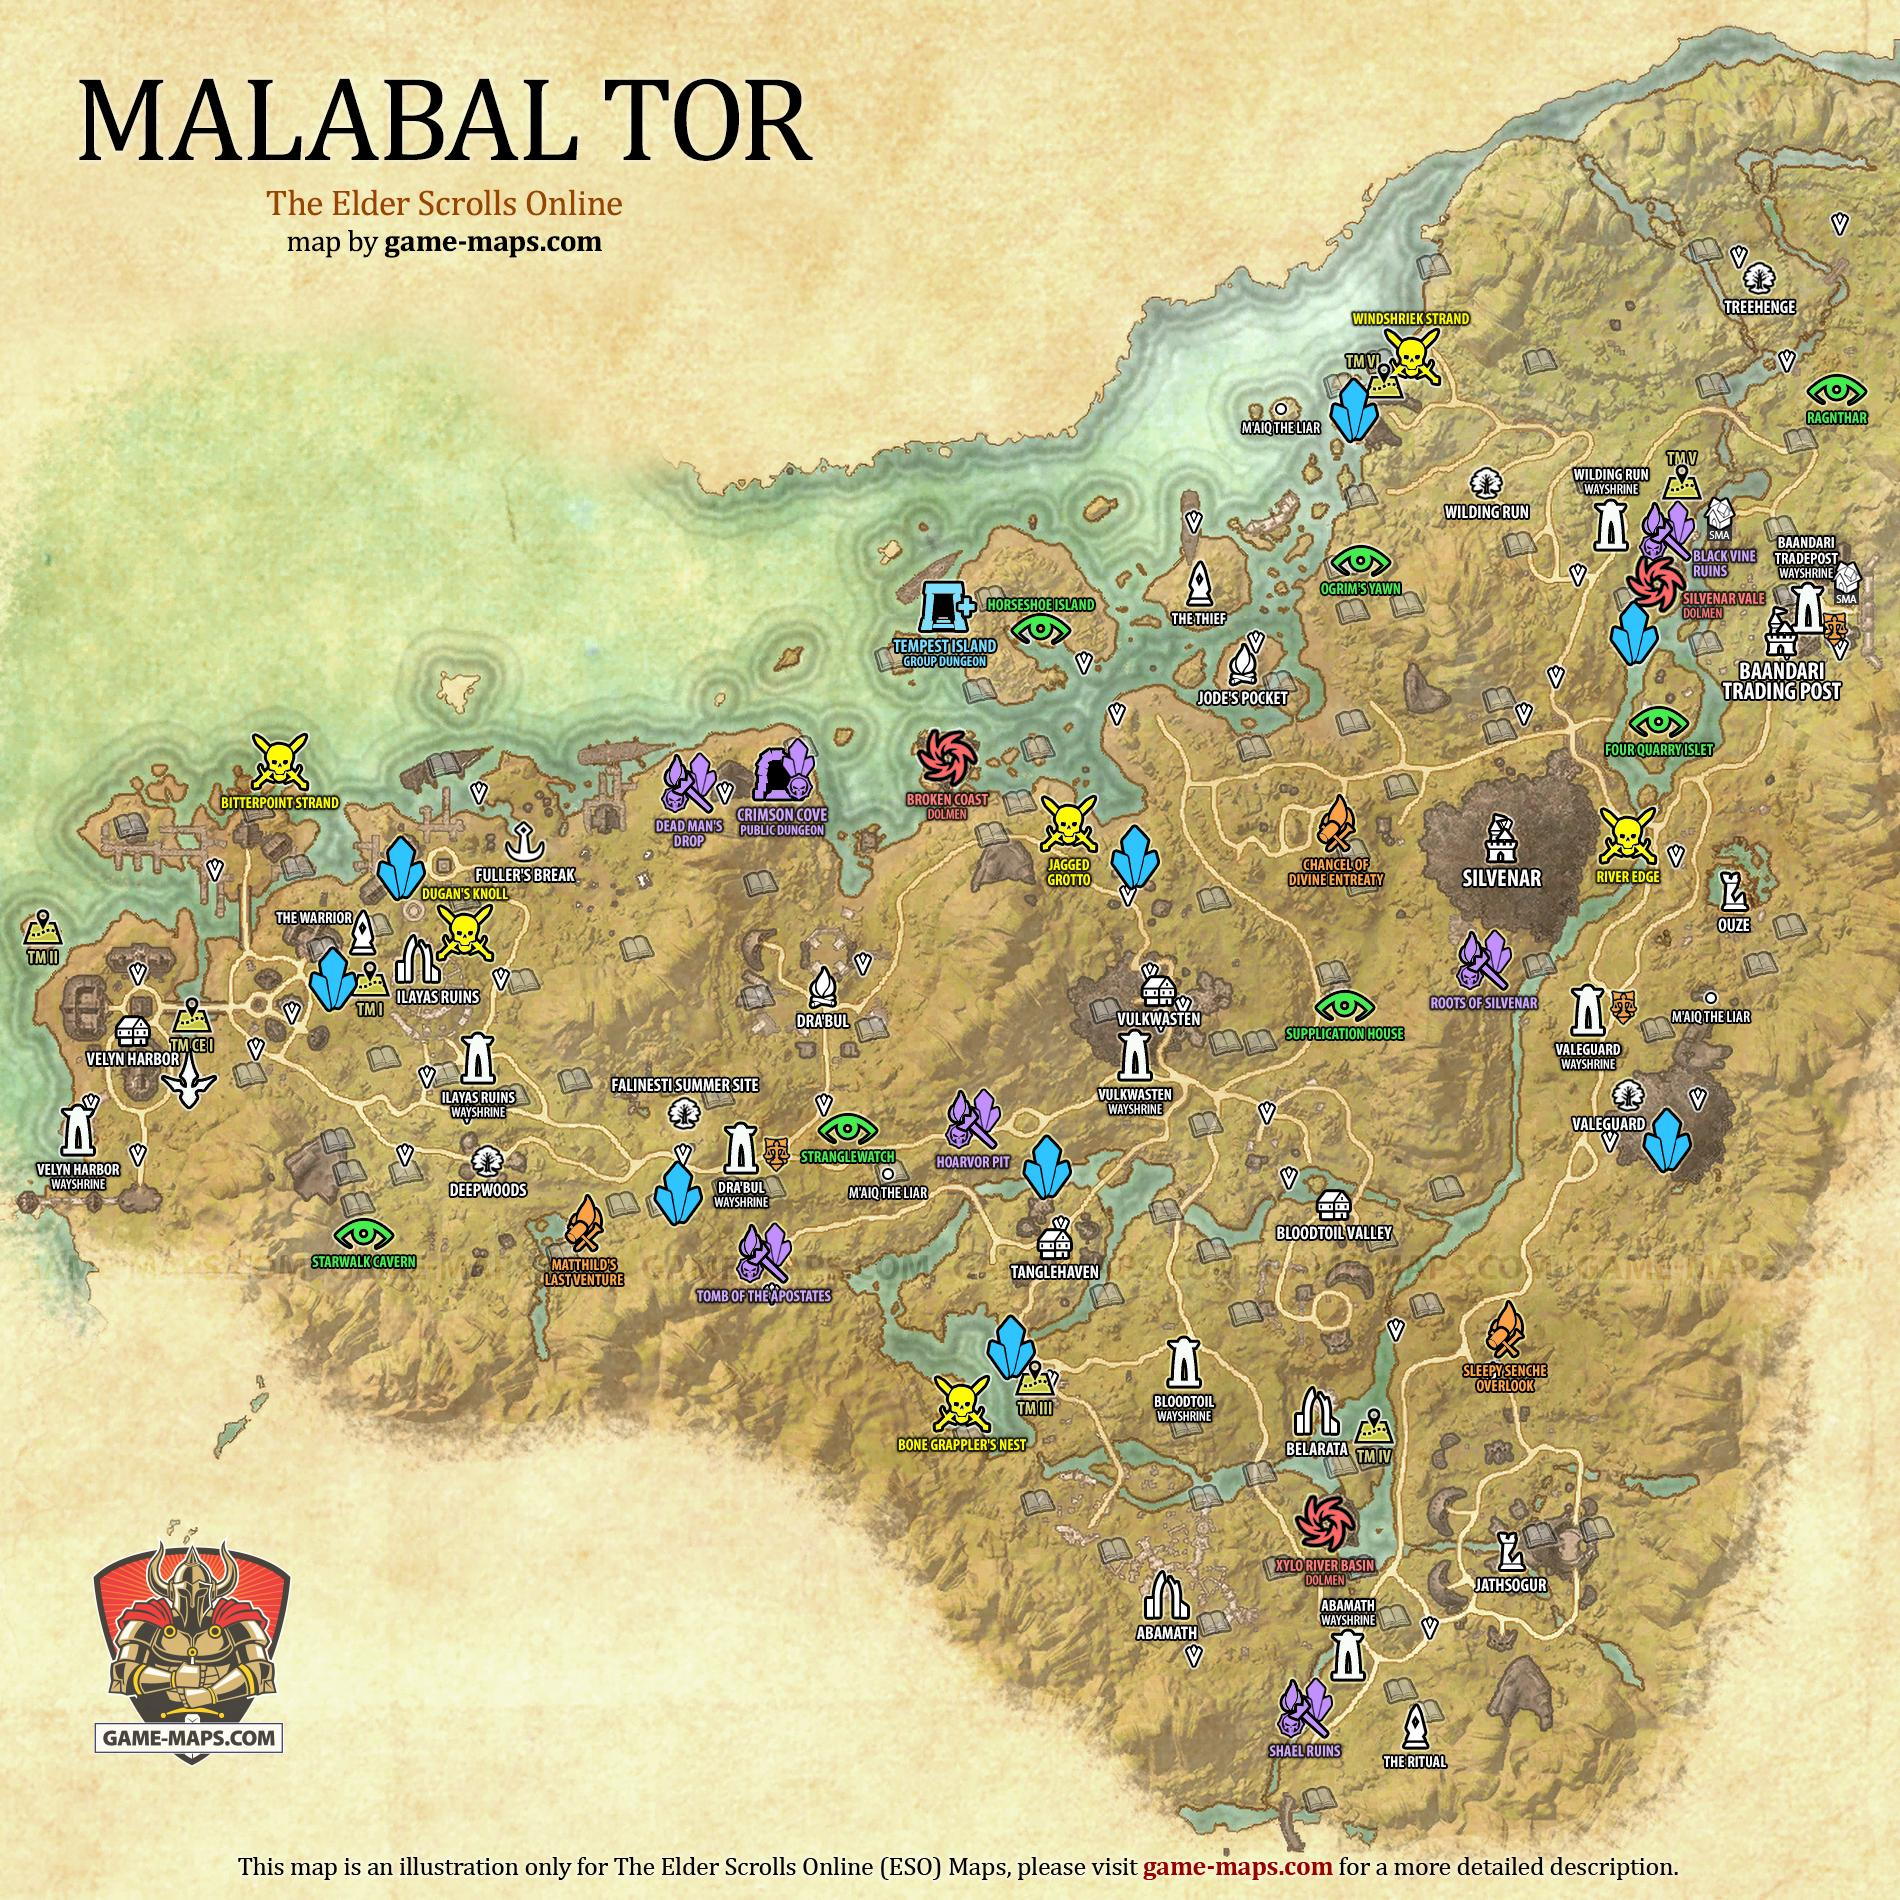 Malabal Tor Map - The Elder Scrolls Online | game-maps.com